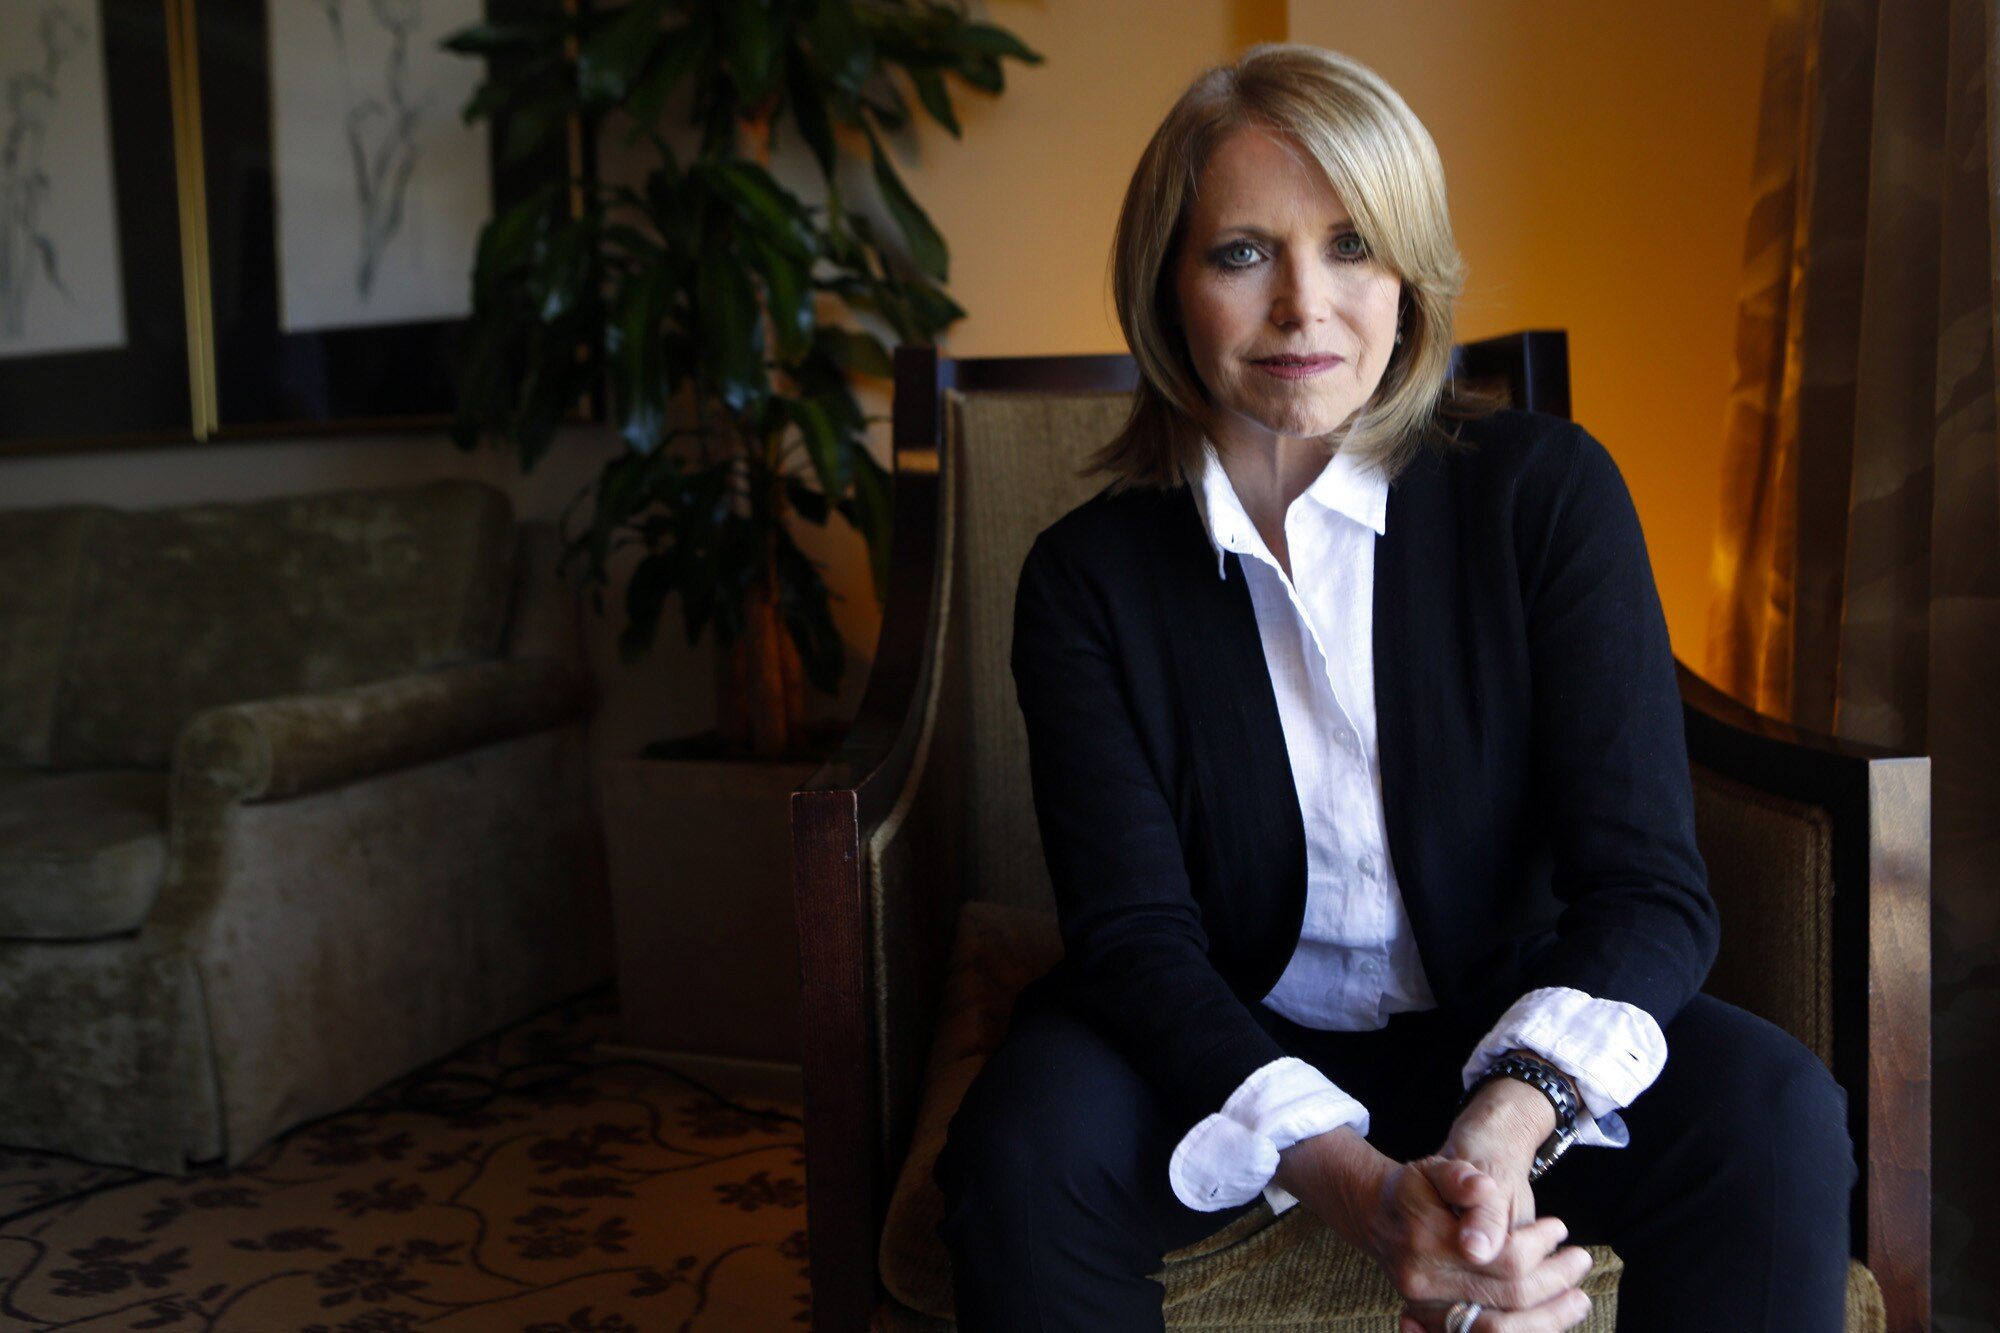 Katie Couric says documentaries are the new journalism. Her new film on gun violence in America will be released May 15, just days before the NRA convention in Louisville, Kentucky. (Photo: The Los Angeles Times)